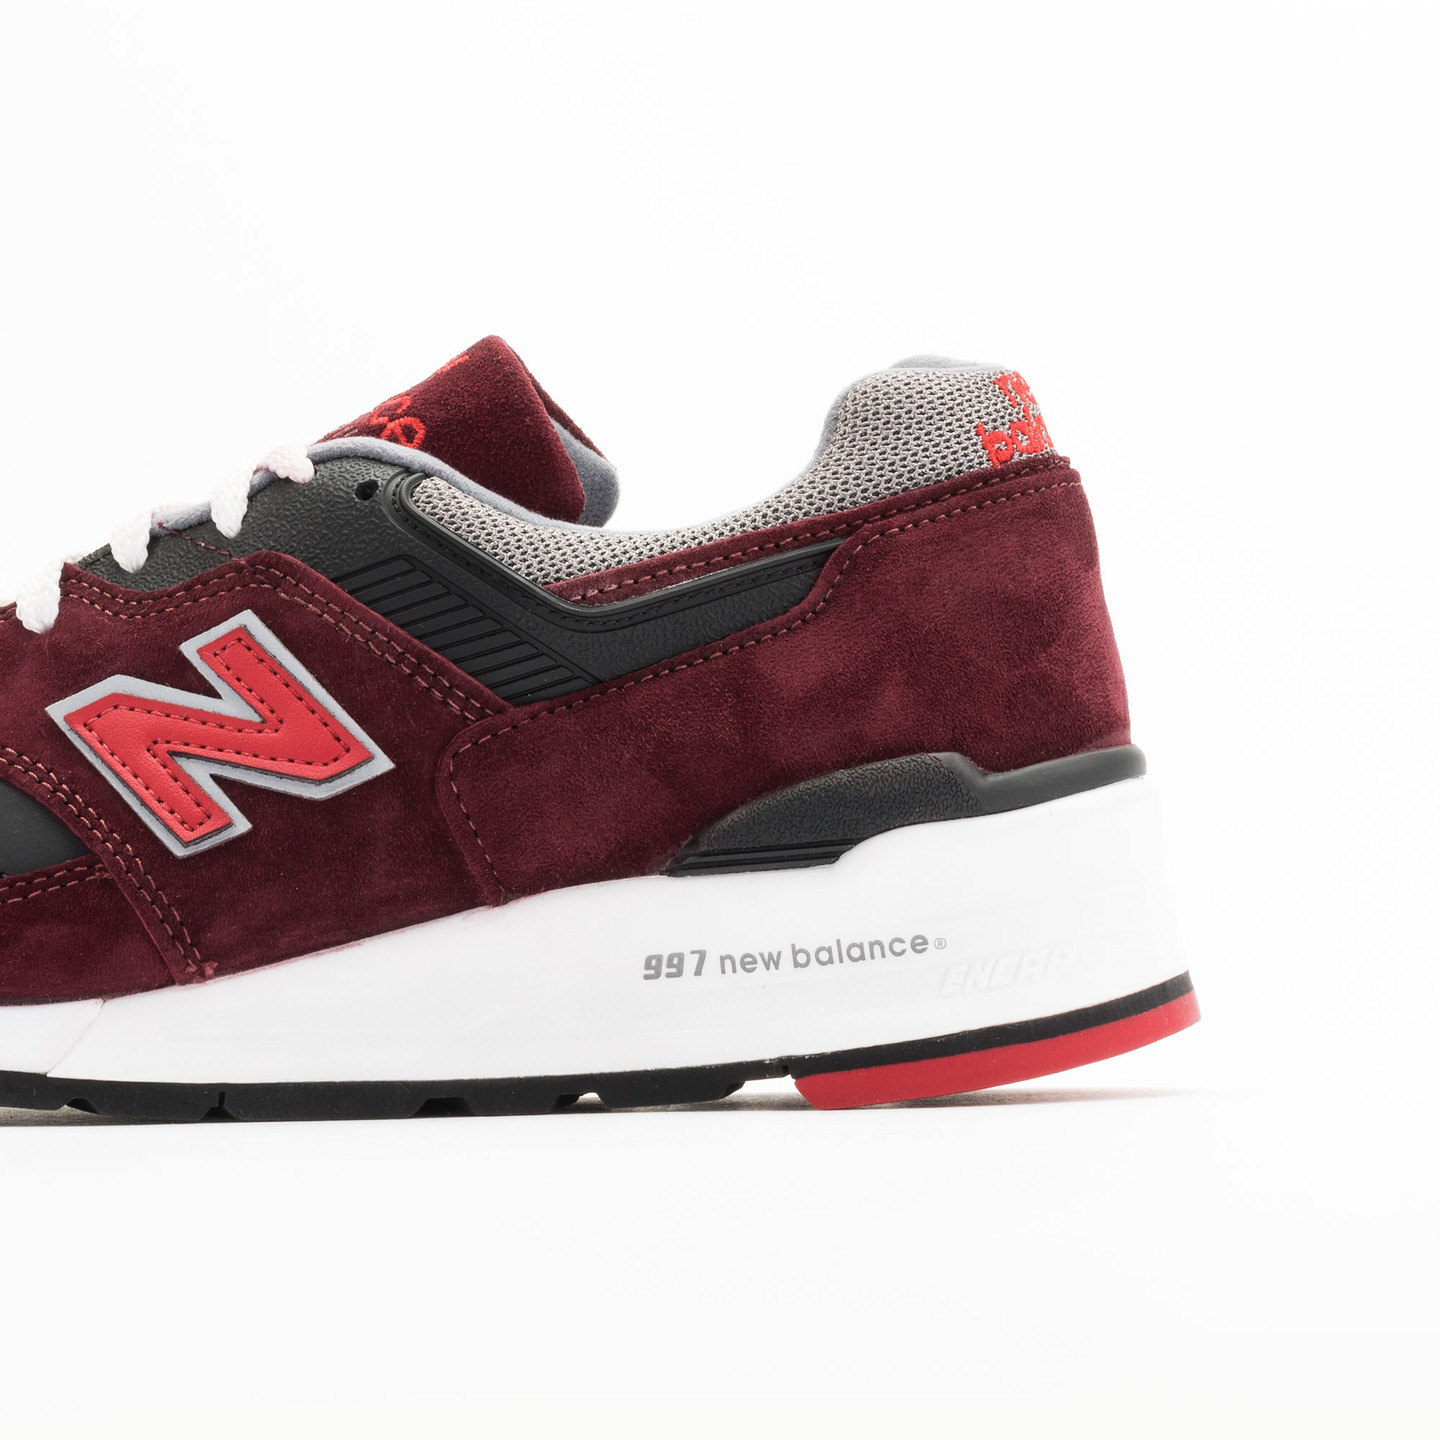 New Balance M997 CRG - Made in USA Brick Red / Black / Grey M997CRG-41.5